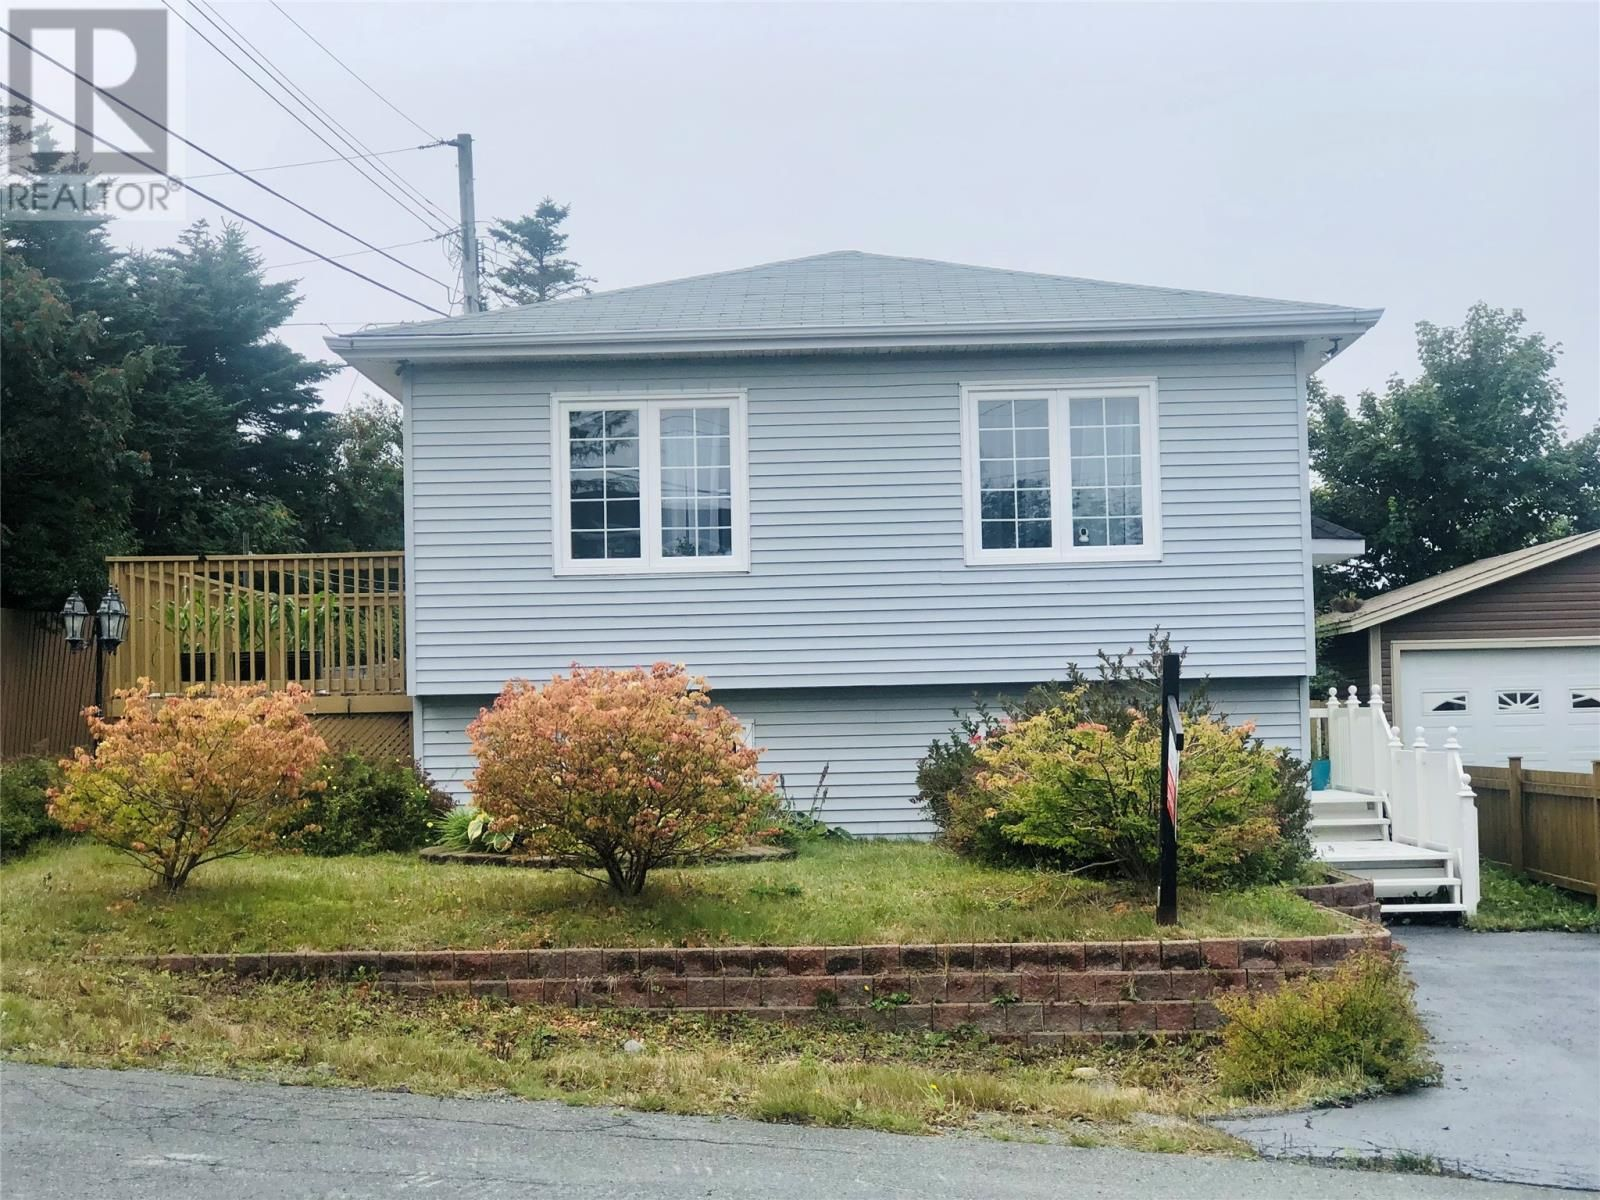 Main Photo: 6 Mccormick Place in Torbay: House for sale : MLS®# 1237920